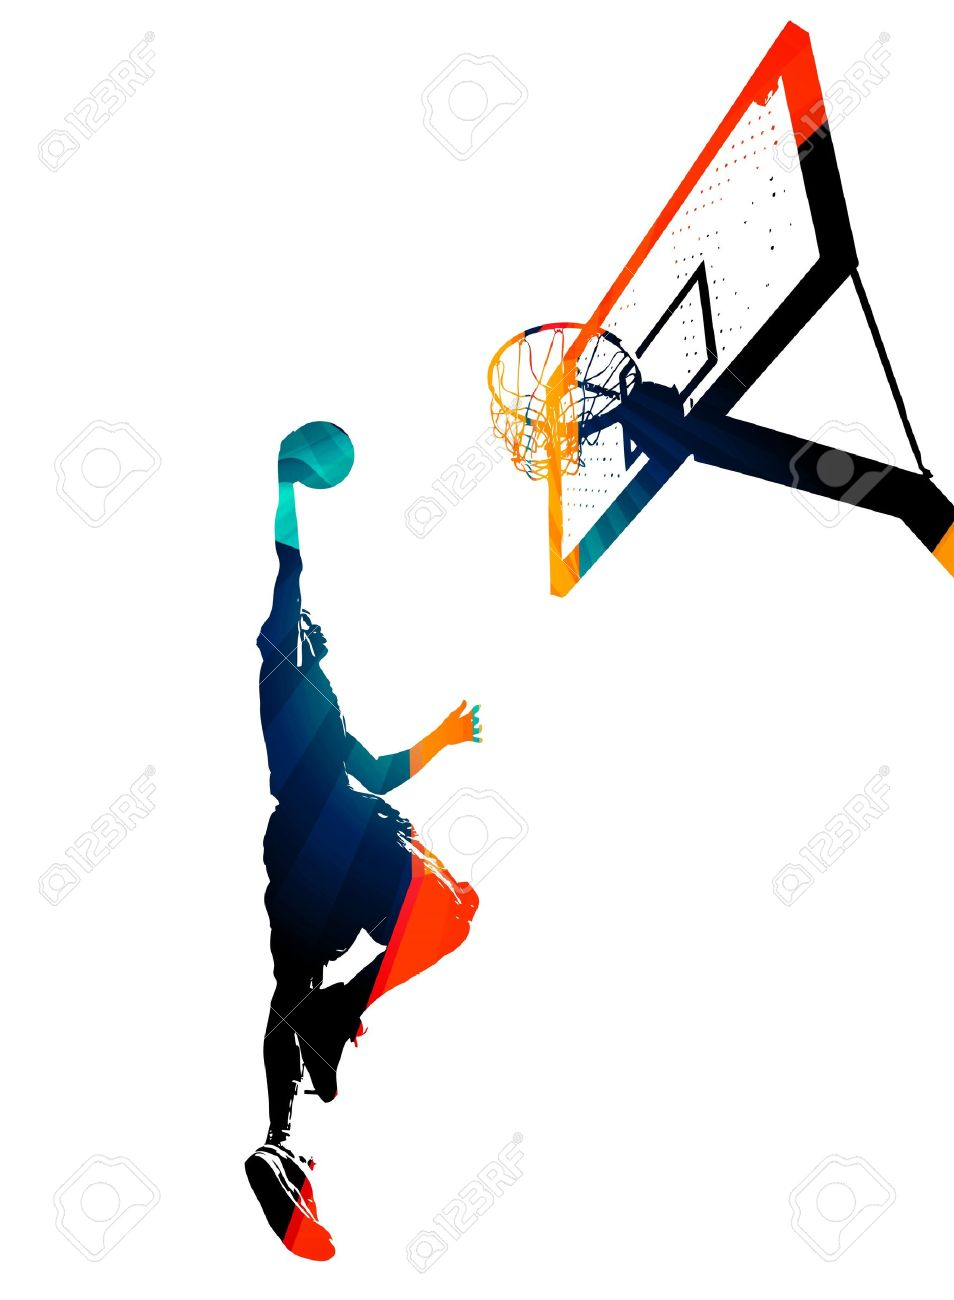 High contrast silhouette illustration of an athlete slam dunking a basketball. Stock Illustration - 21381693